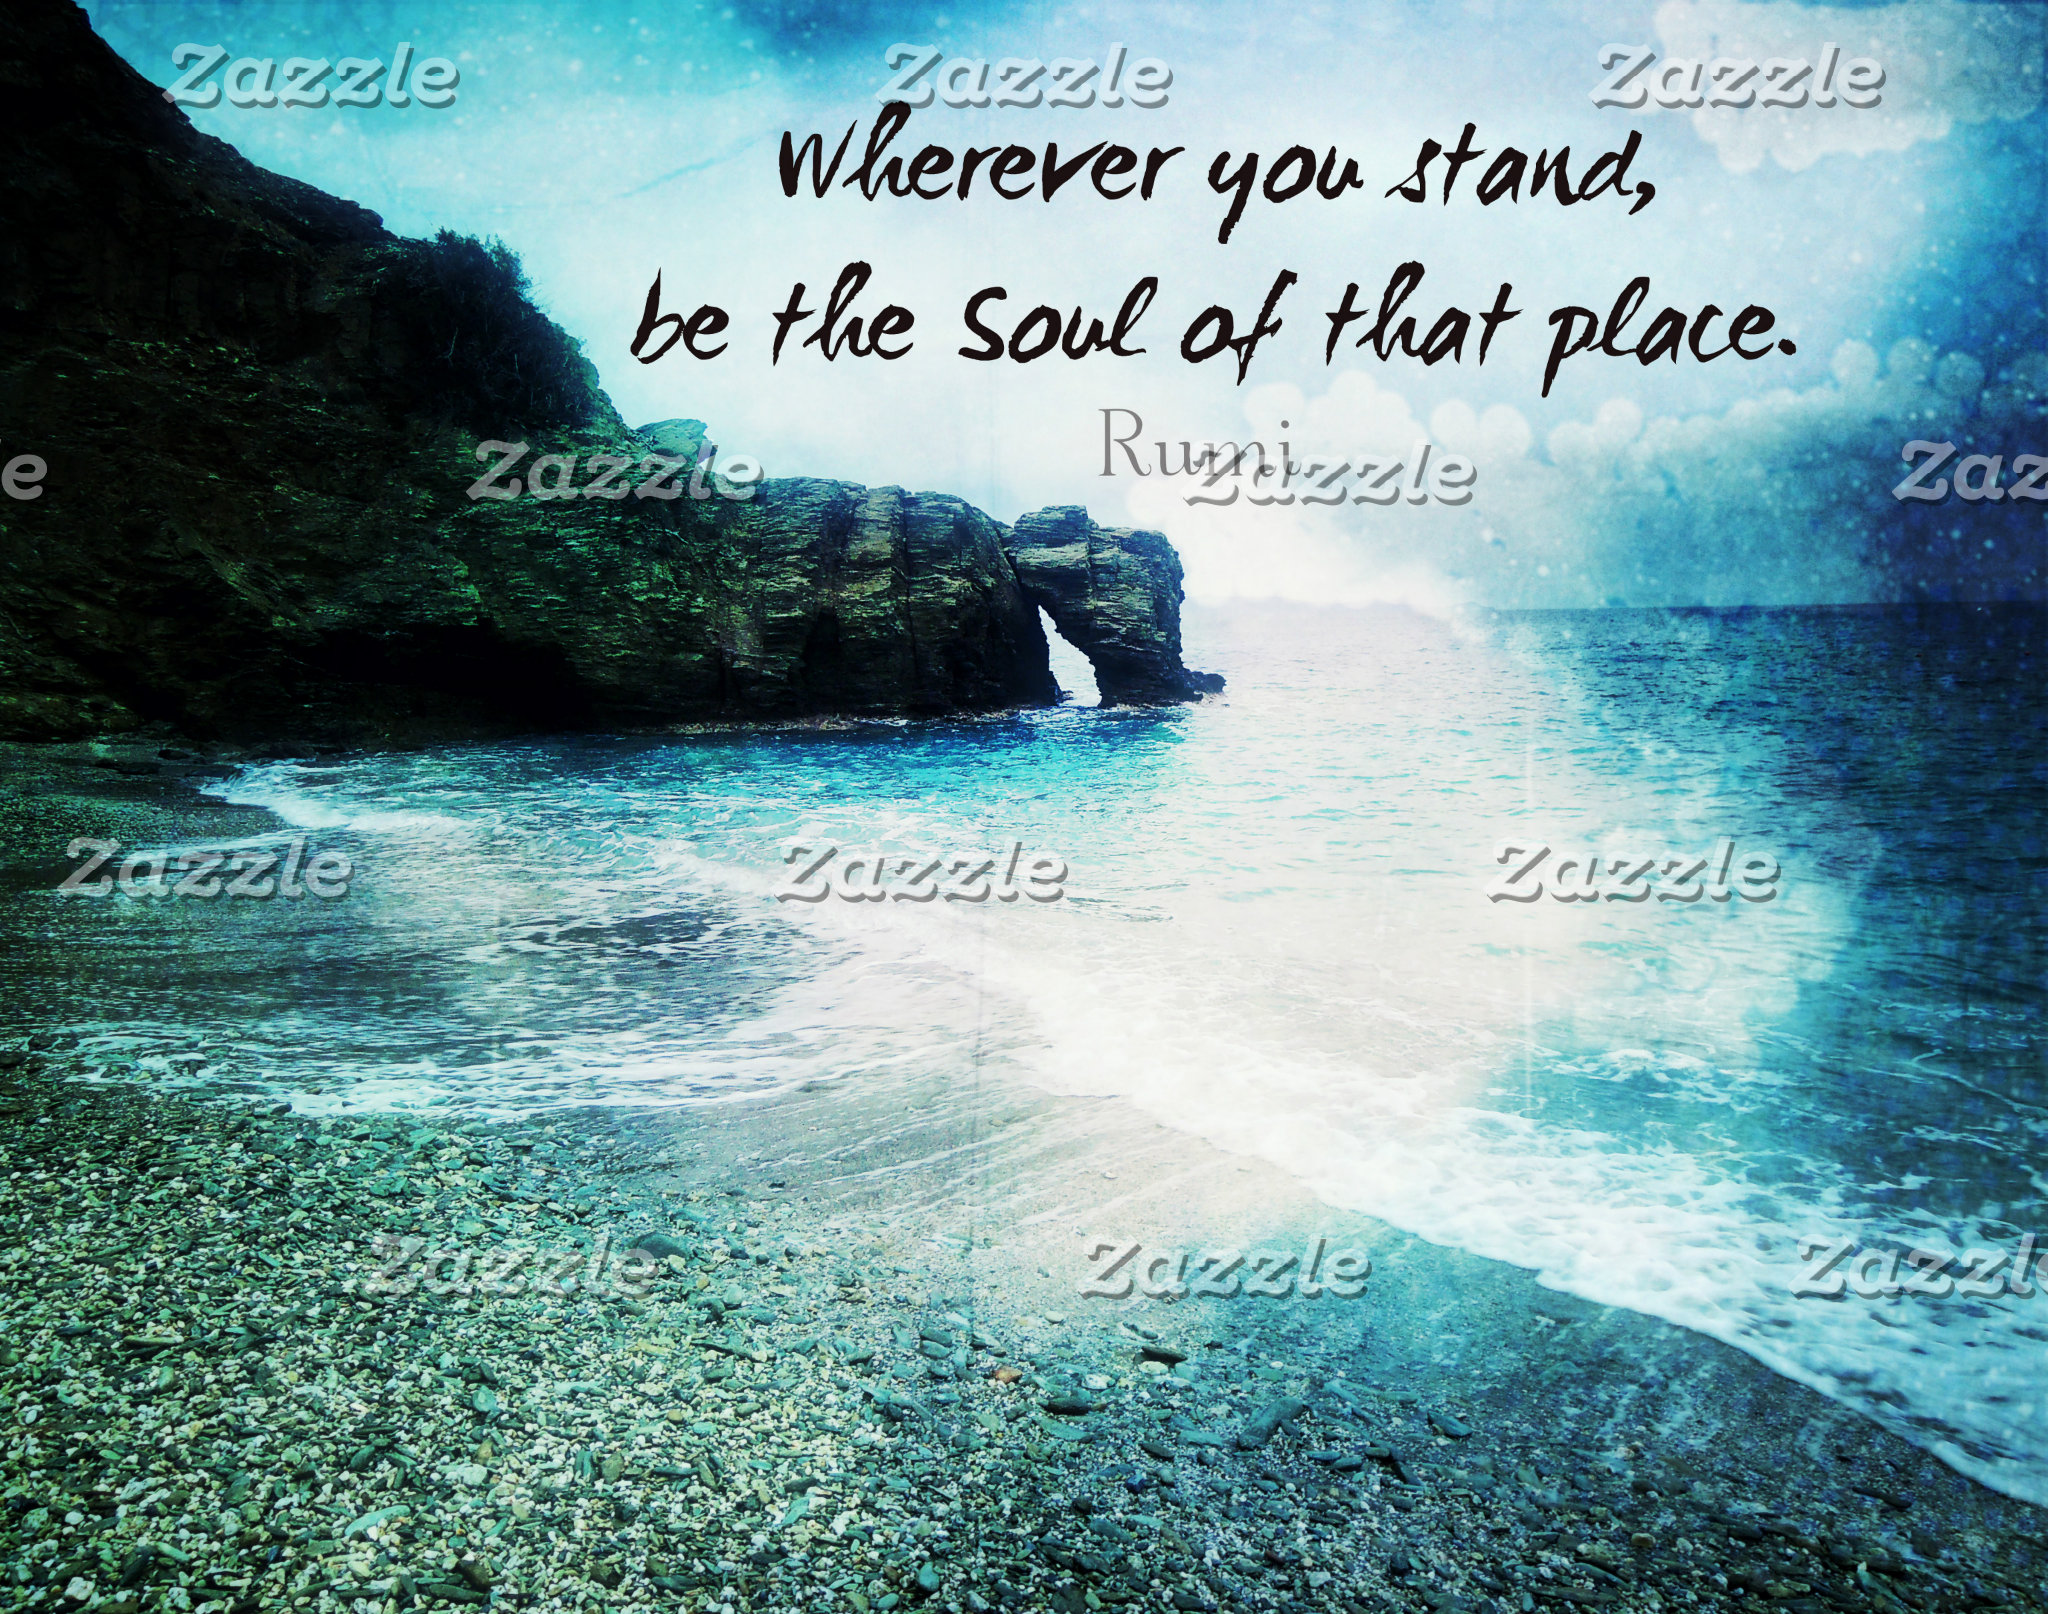 Wherever you stand, be the Soul of that place.